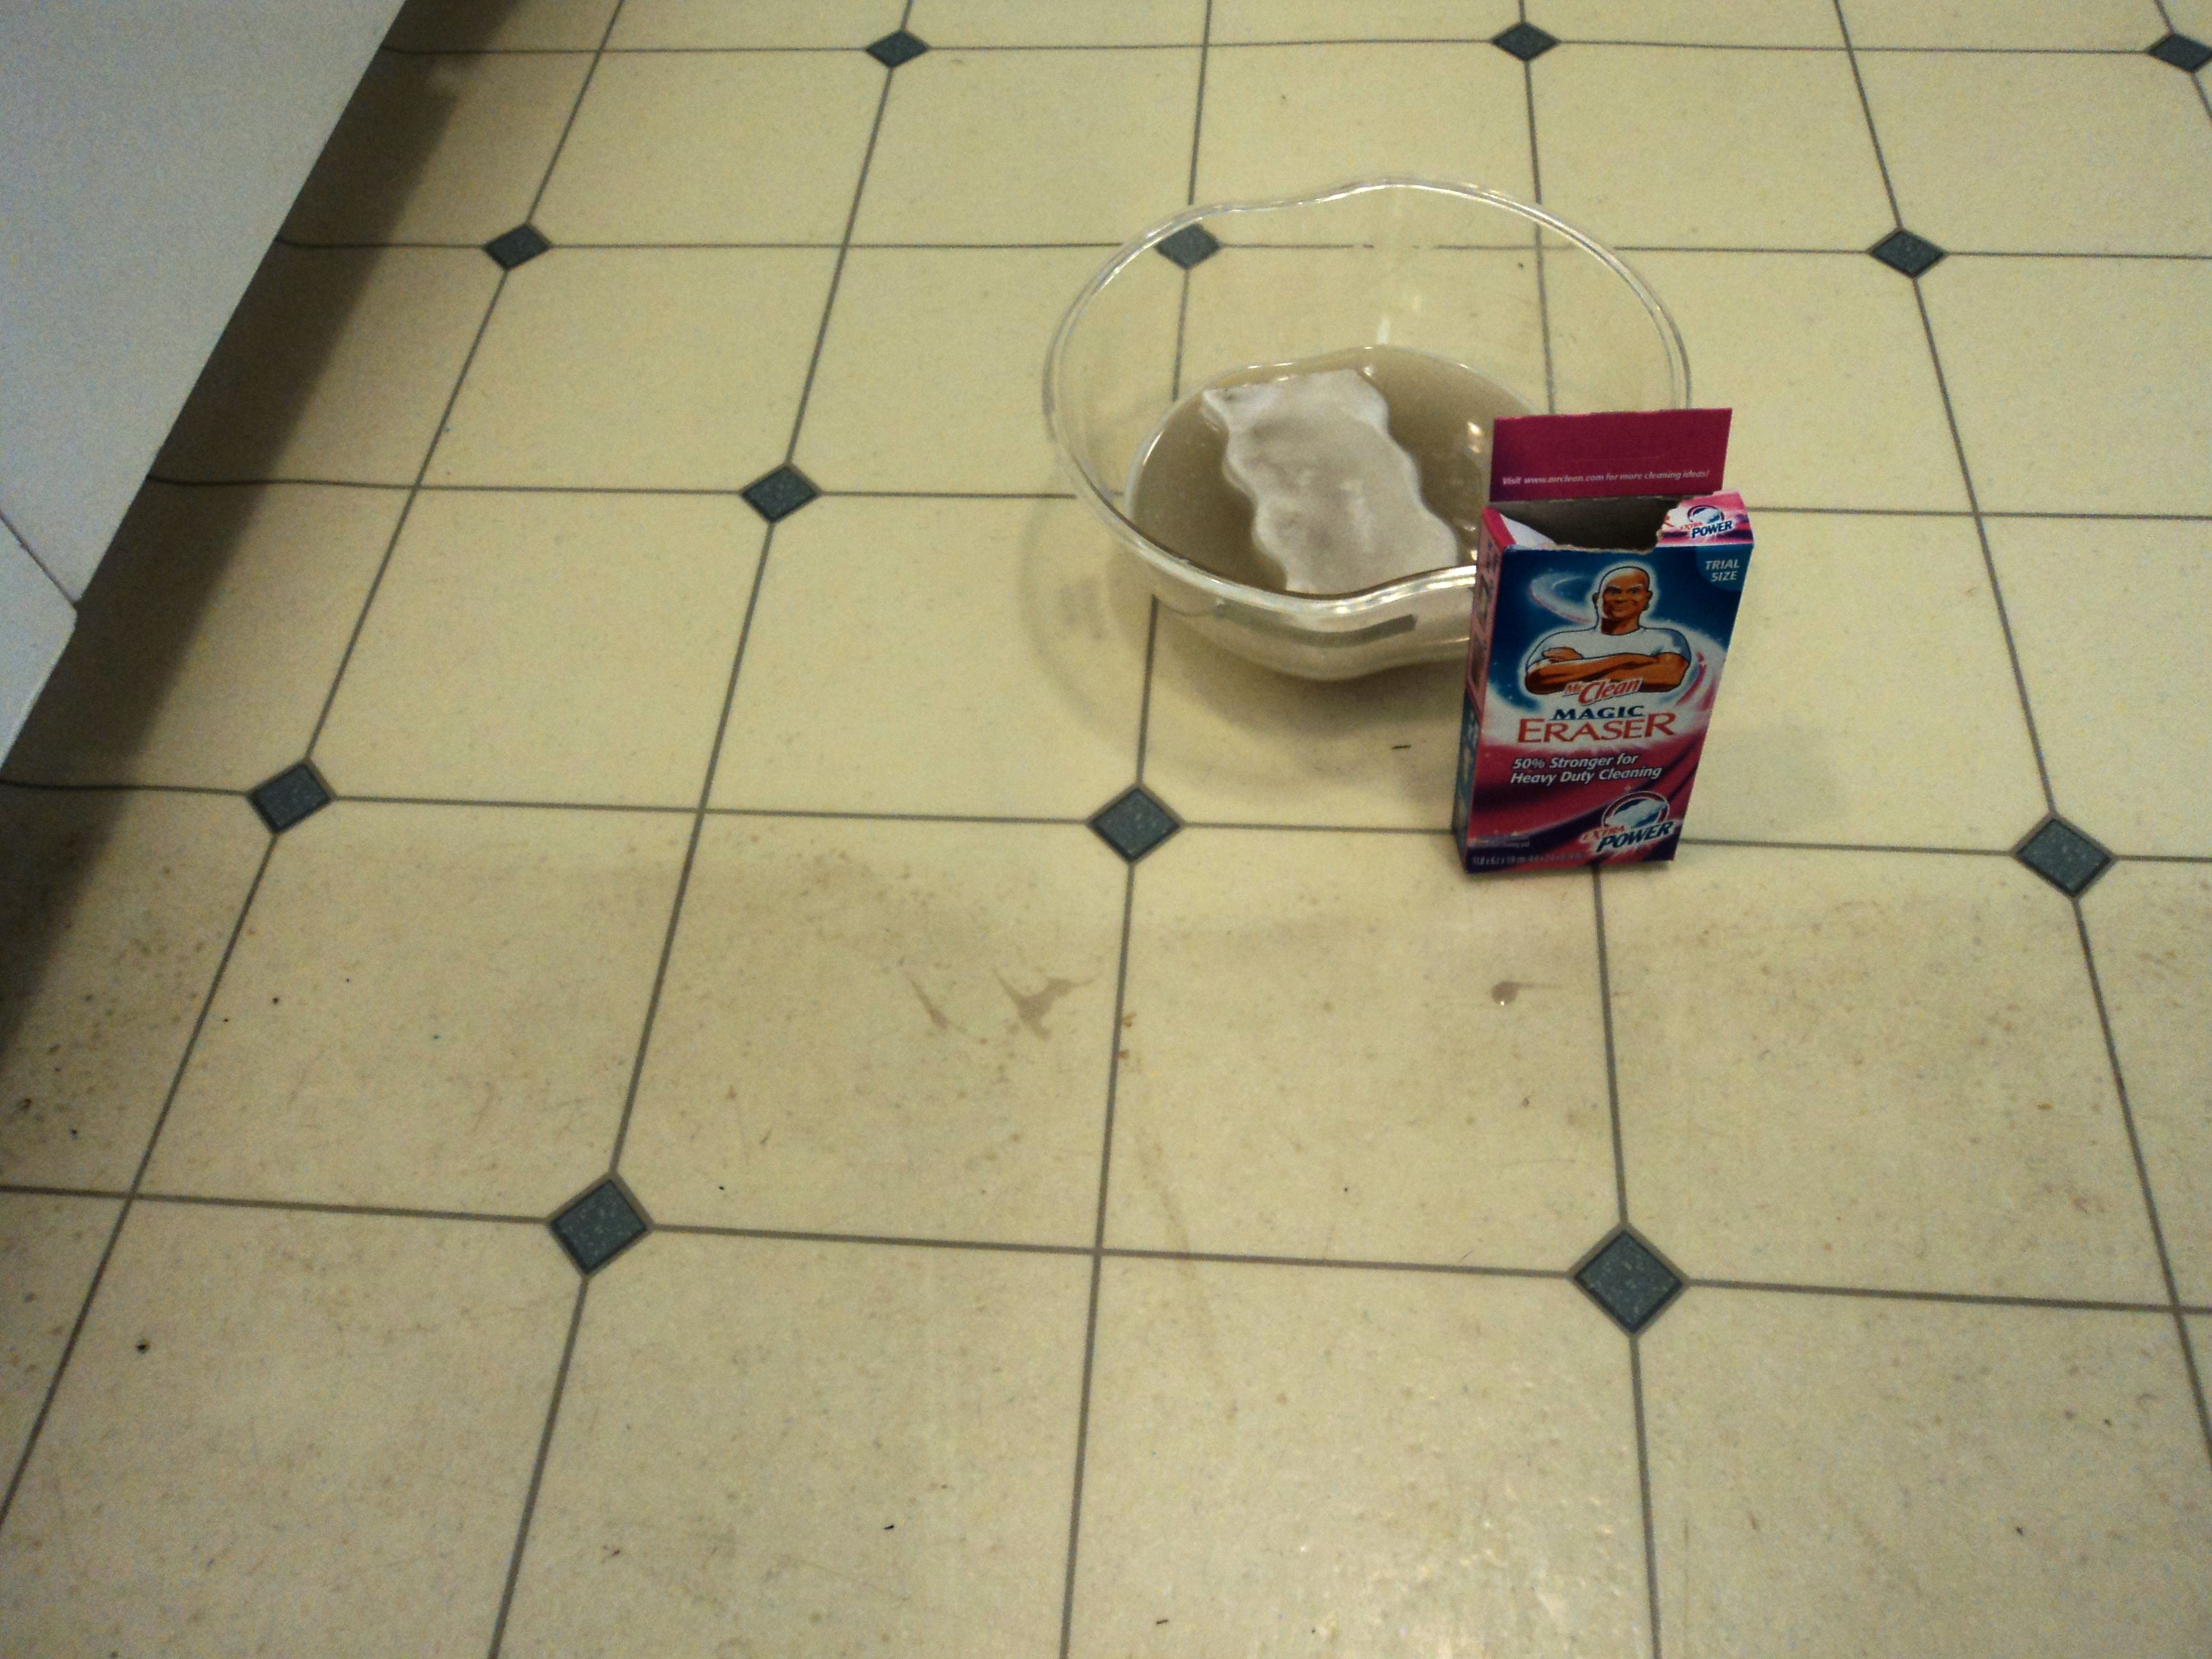 for cleaning kitchen linoleum when mopping isn't enough! i used to